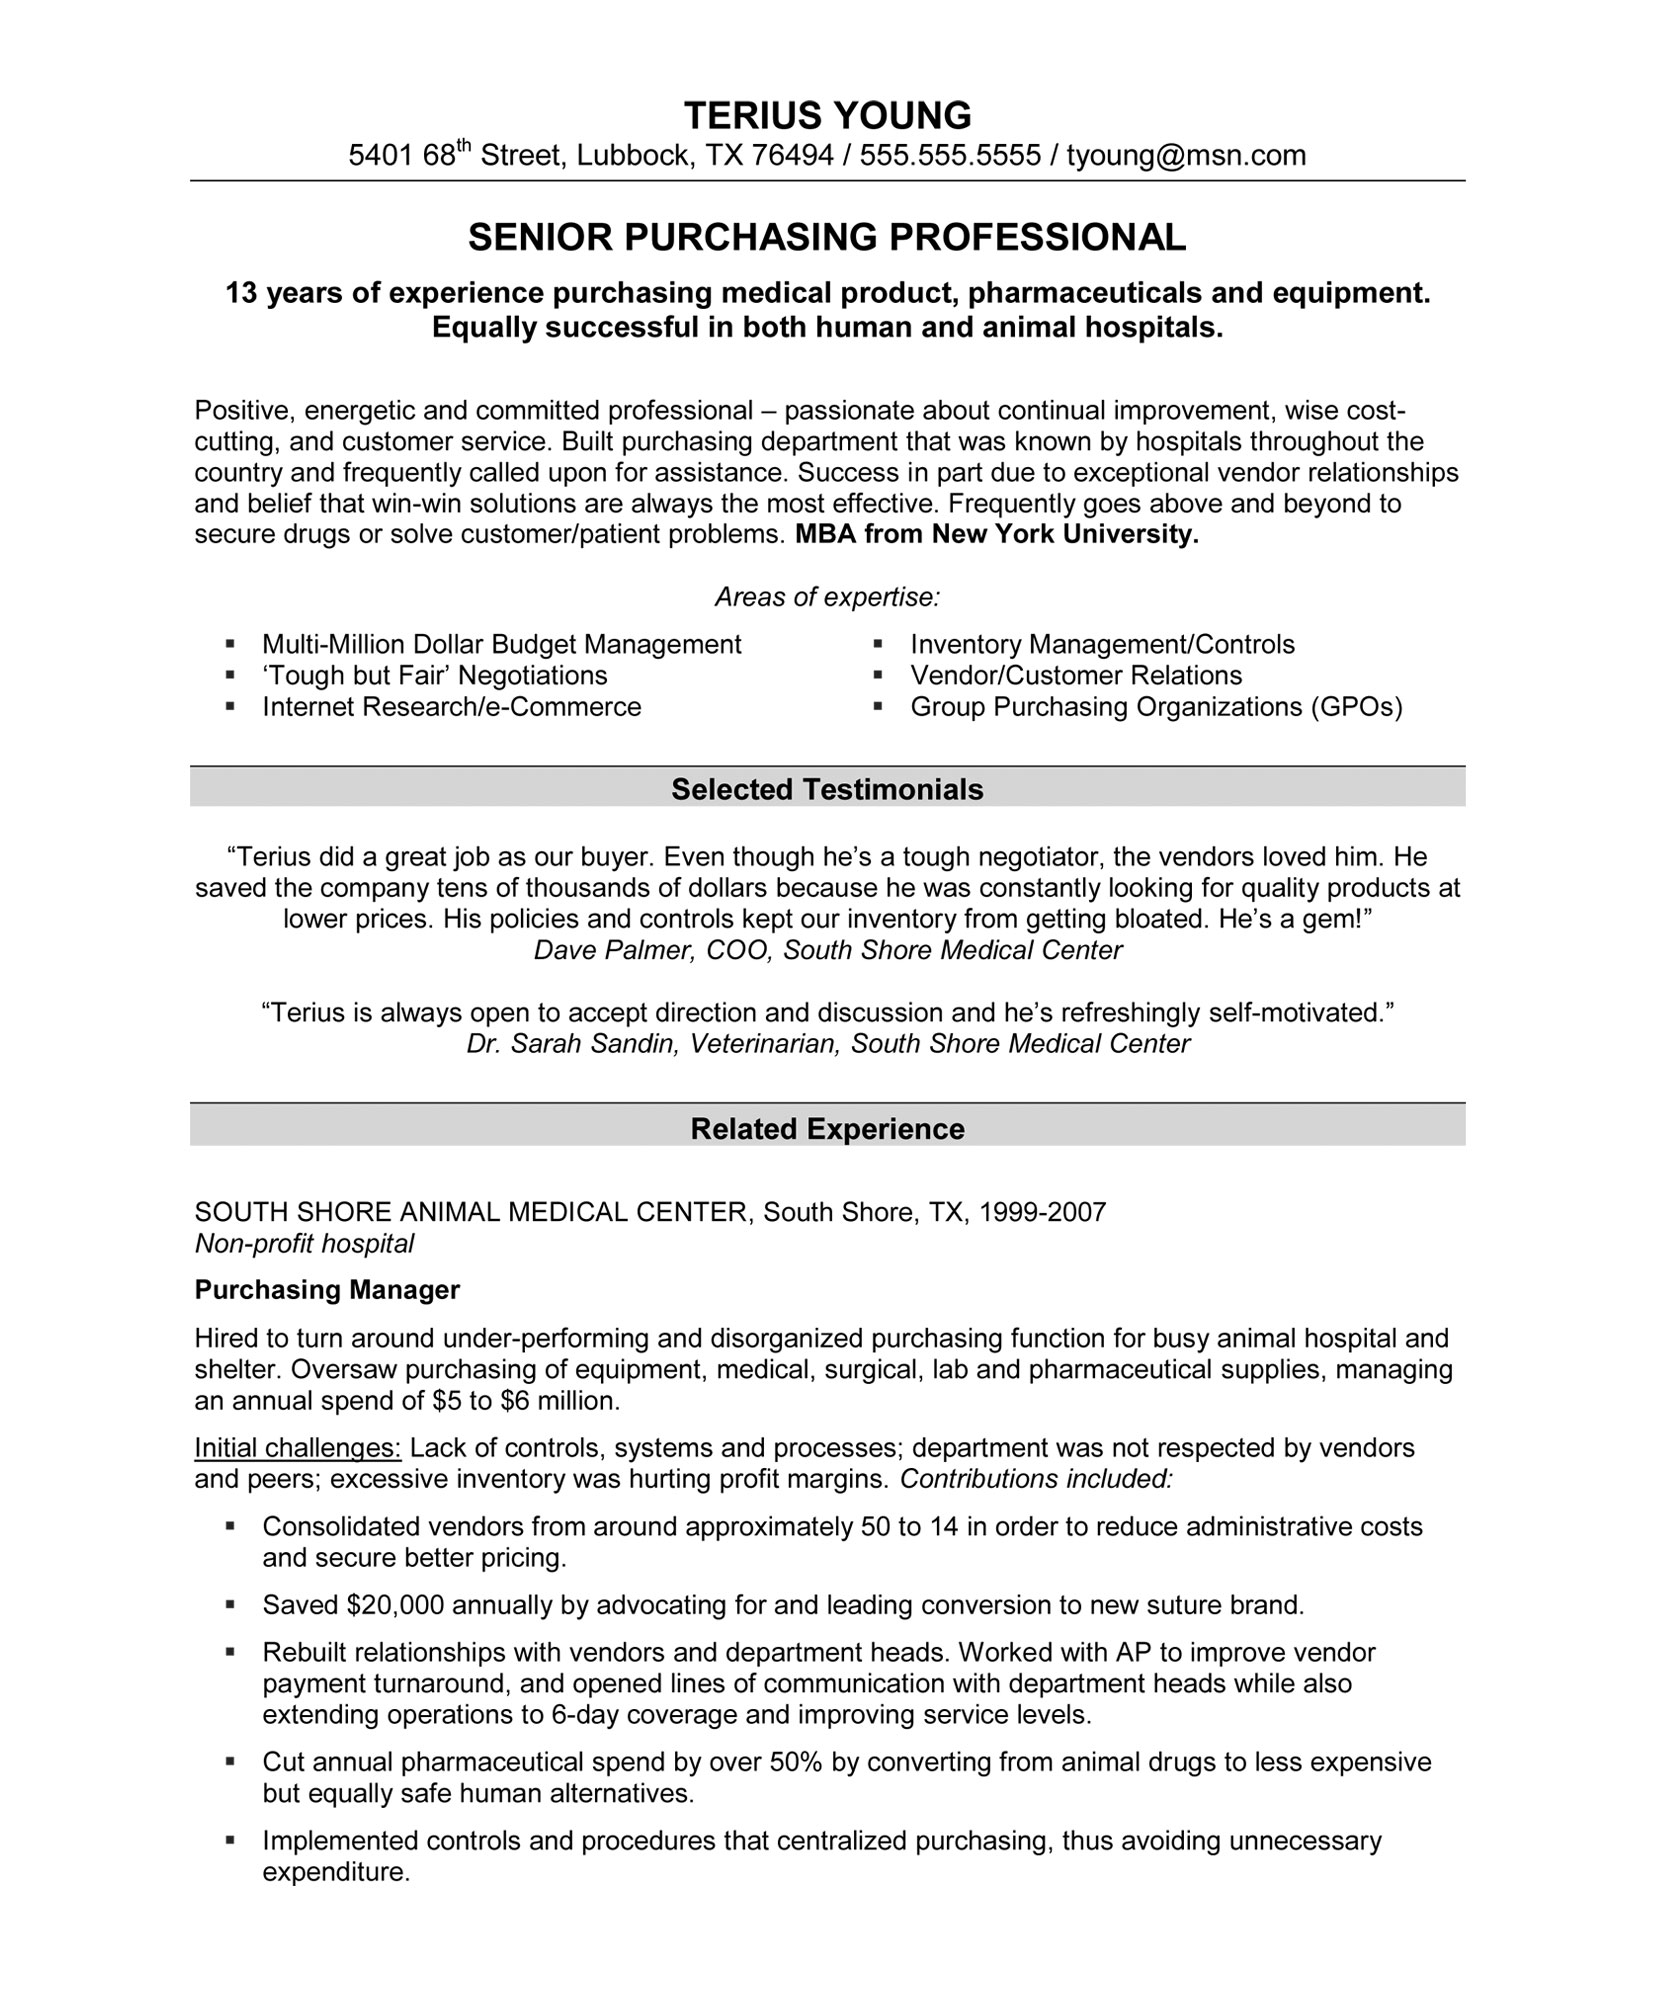 How To Make A Resume 1 1 (Examples Included)